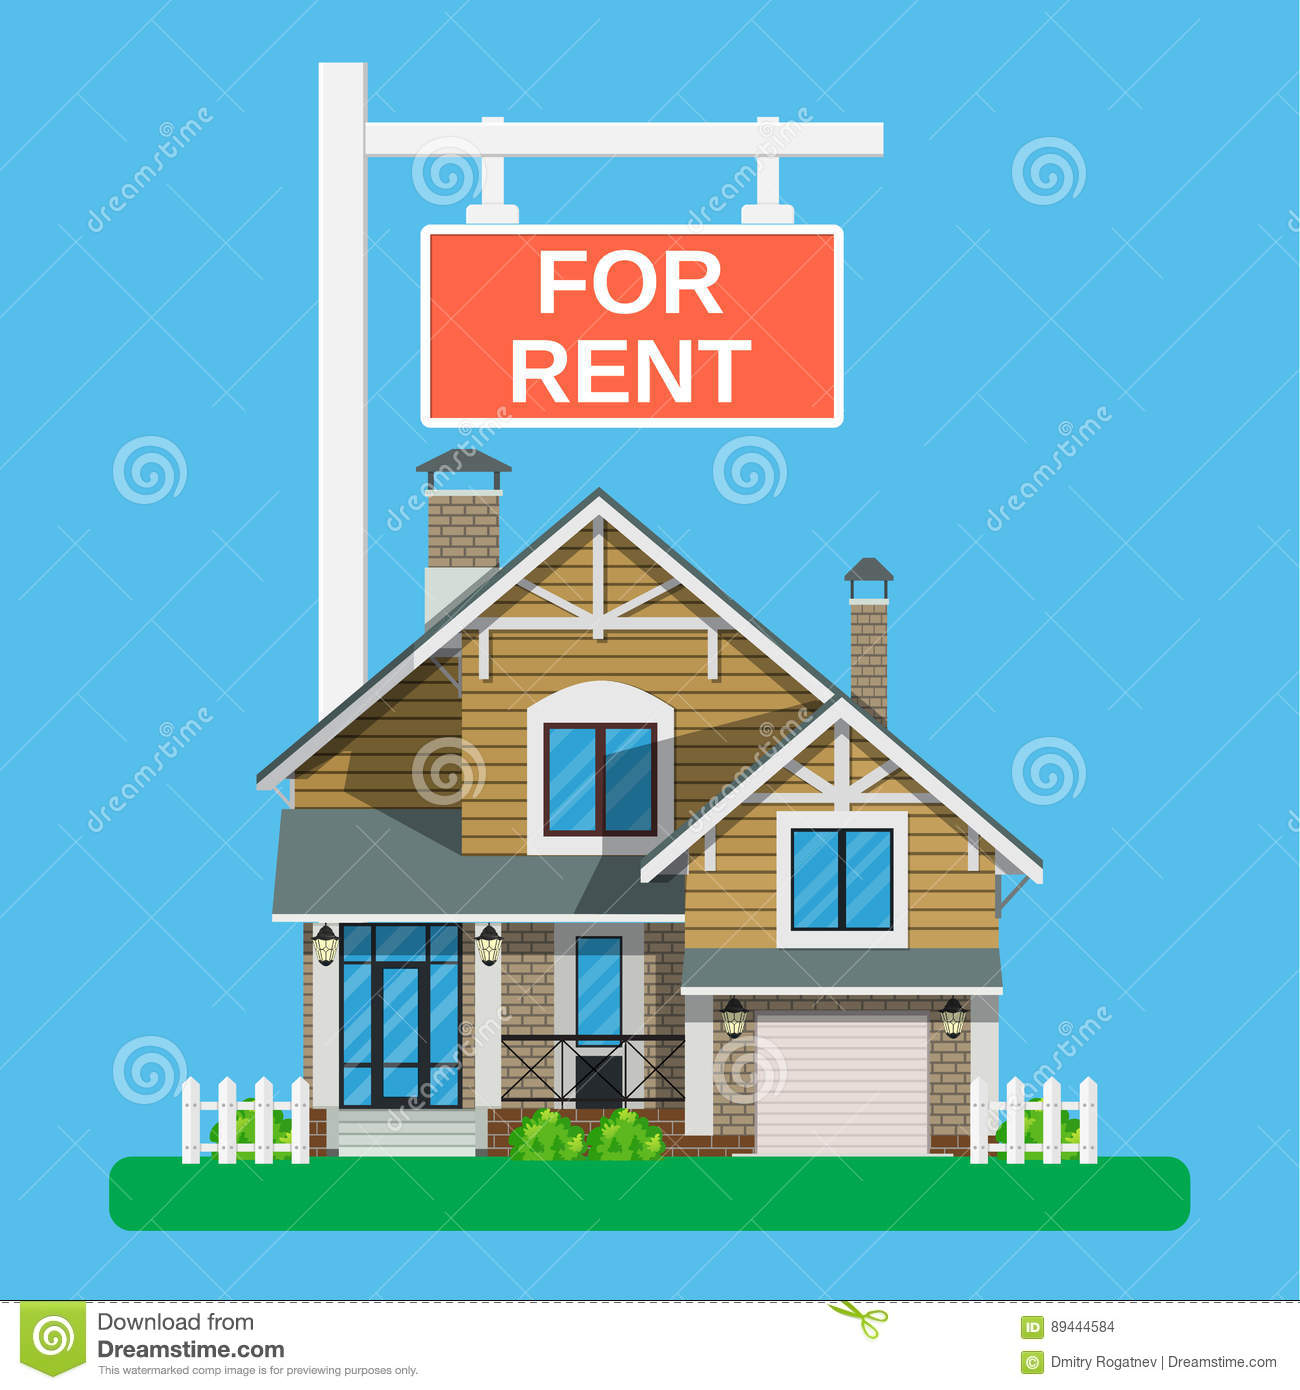 Website For Houses For Rent: Home For Rent Icon. Real Estate Concept, Stock Vector